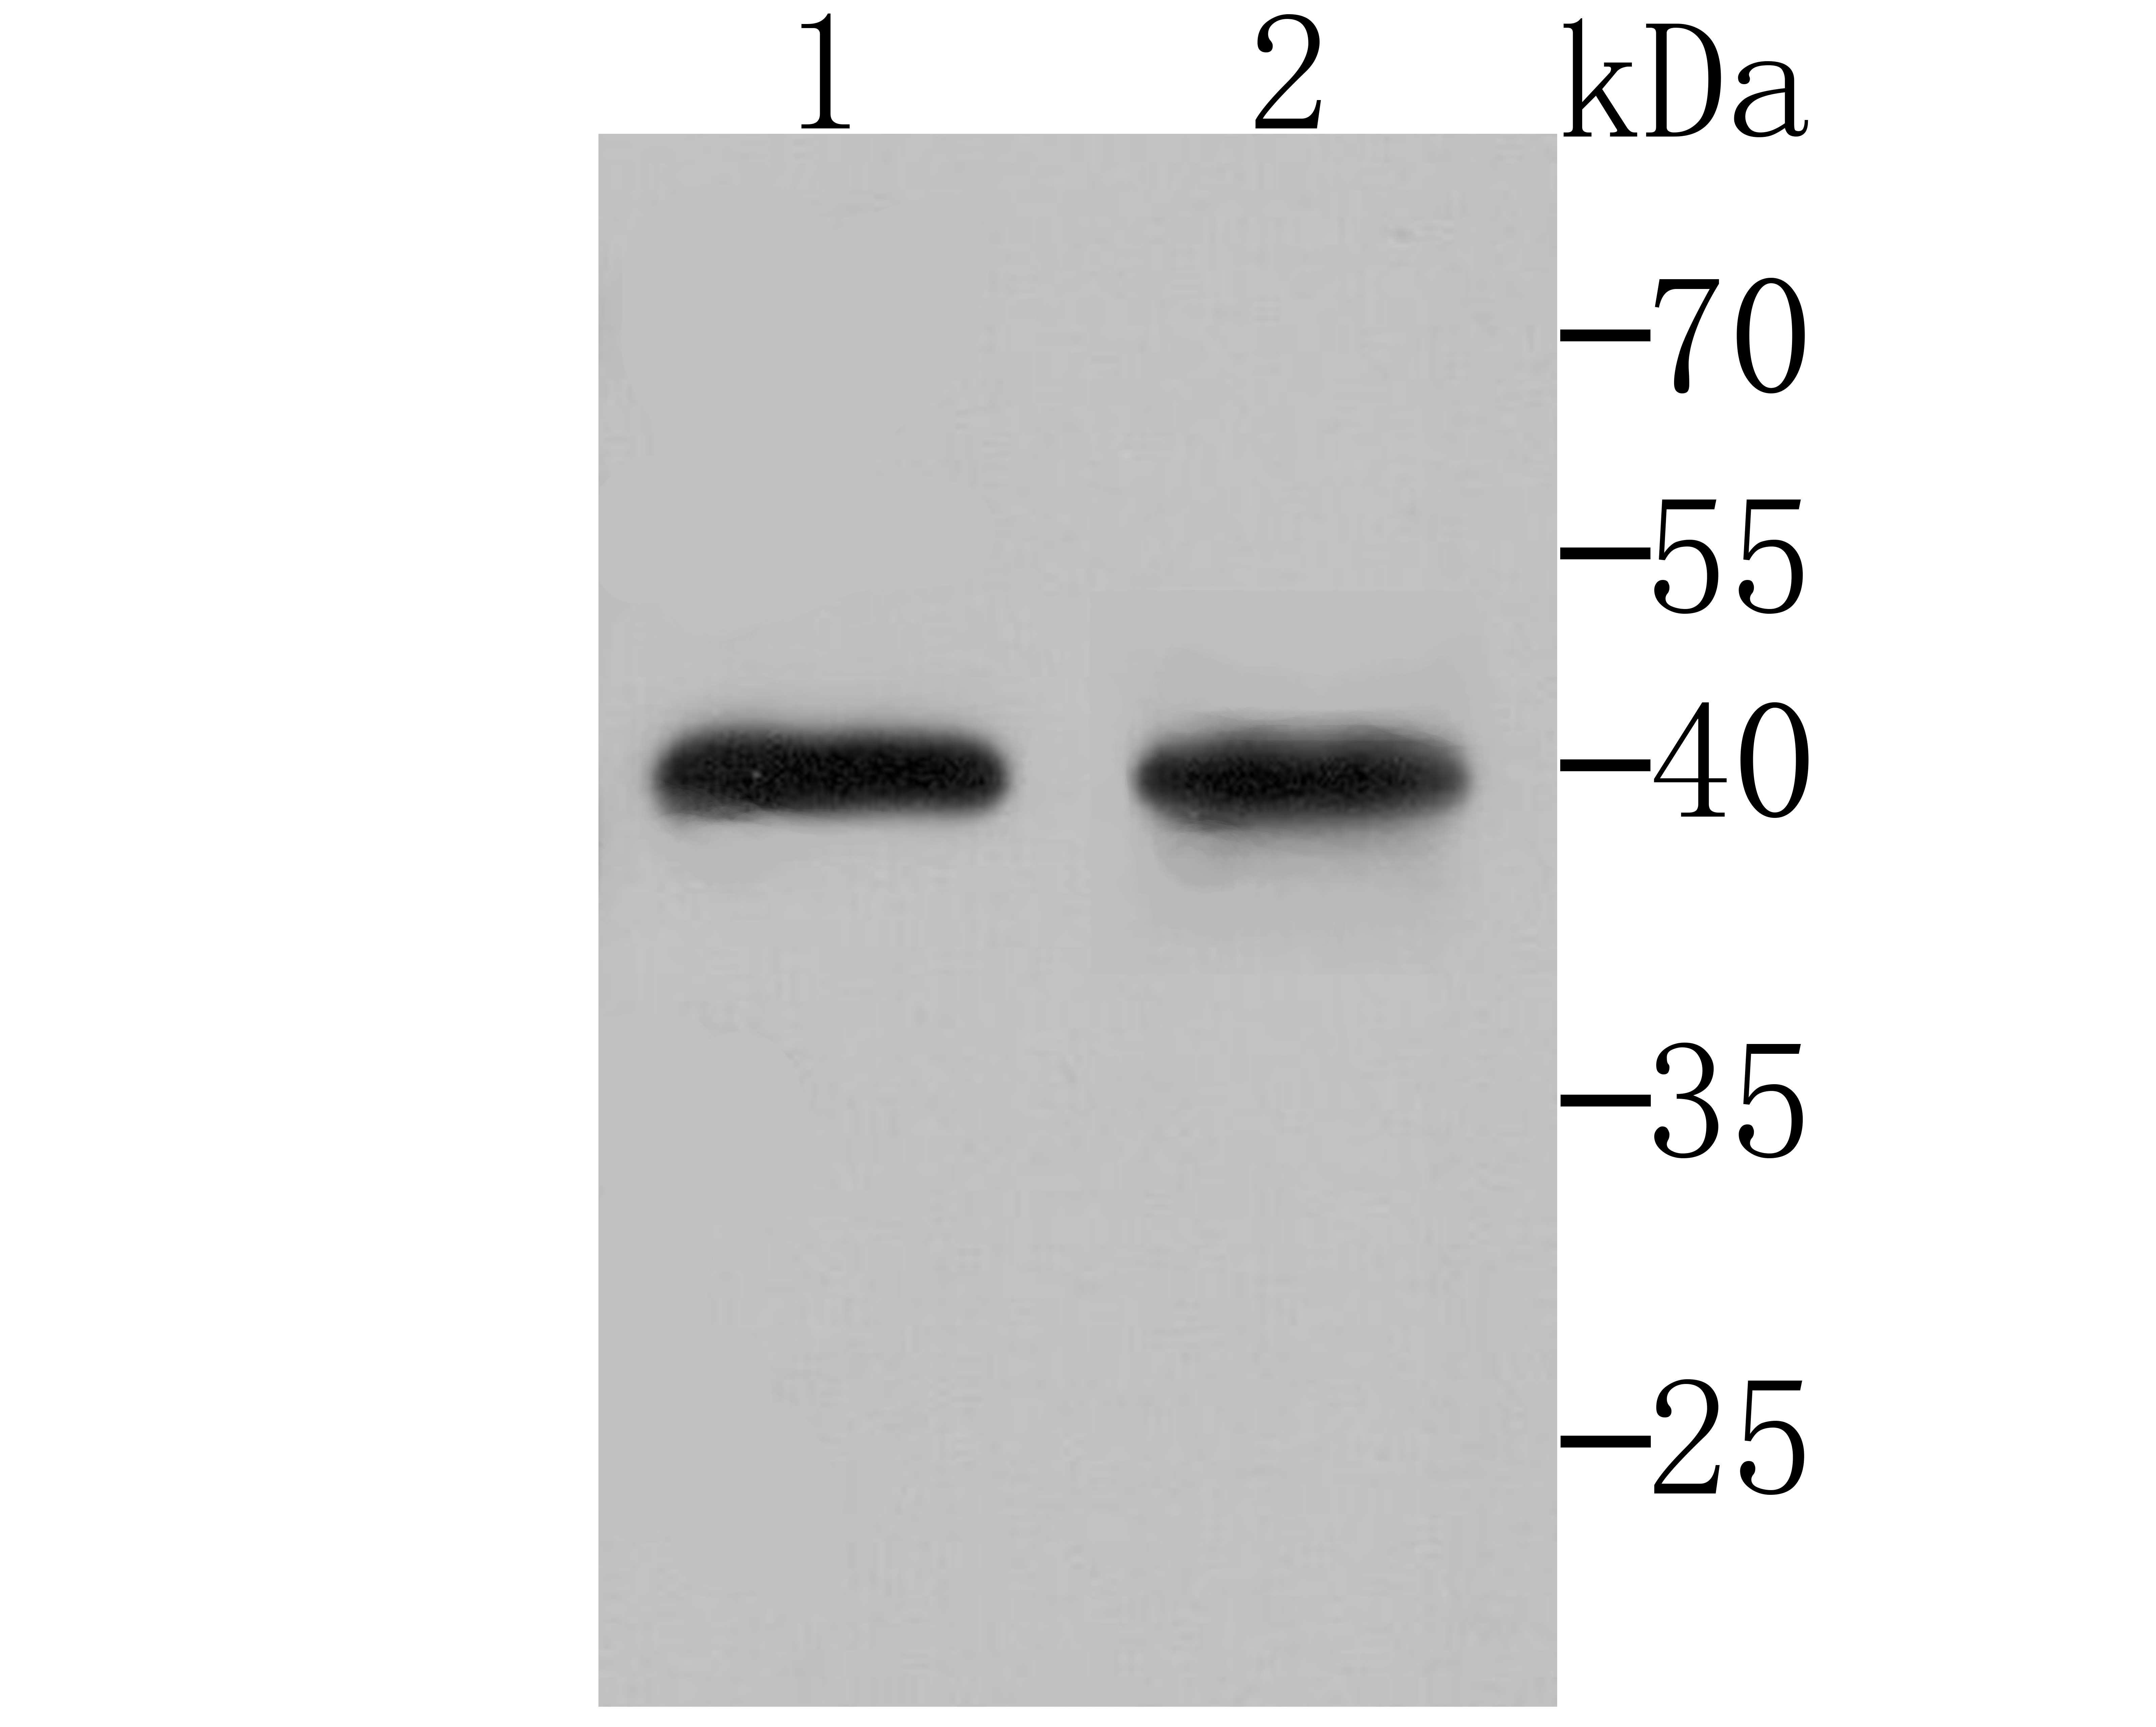 Western blot analysis of DDIT4 on Hela (1) and K562 (2) cell lysates using anti-DDIT4 antibody at 1/200 dilution.